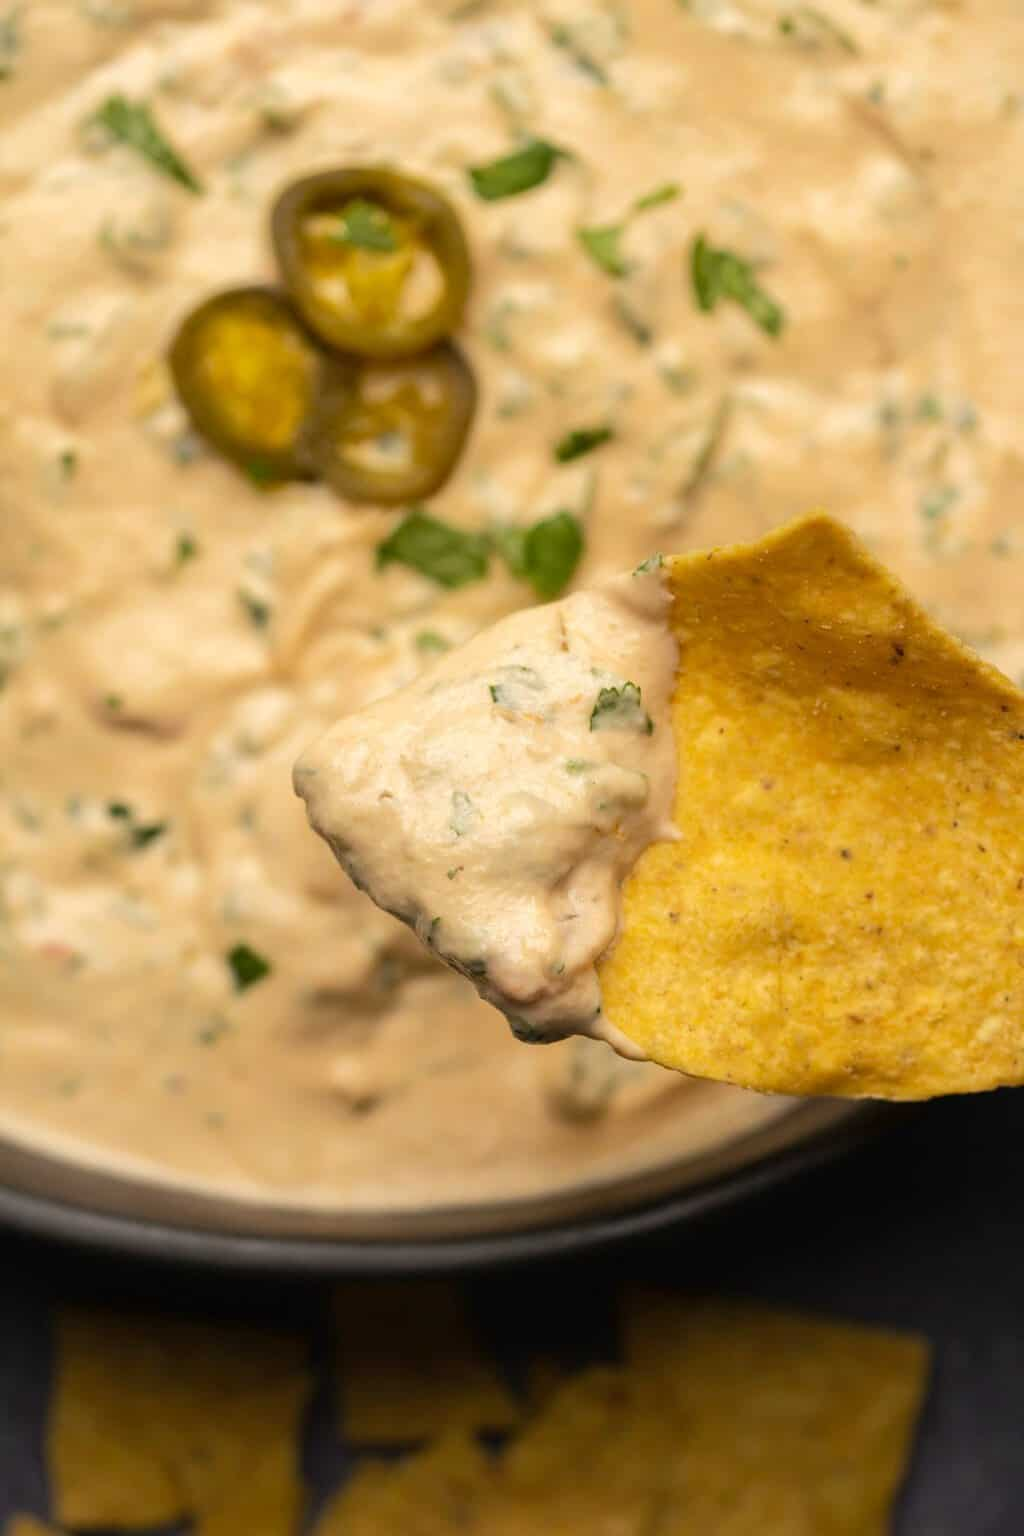 Cashew queso on a tortilla chip.